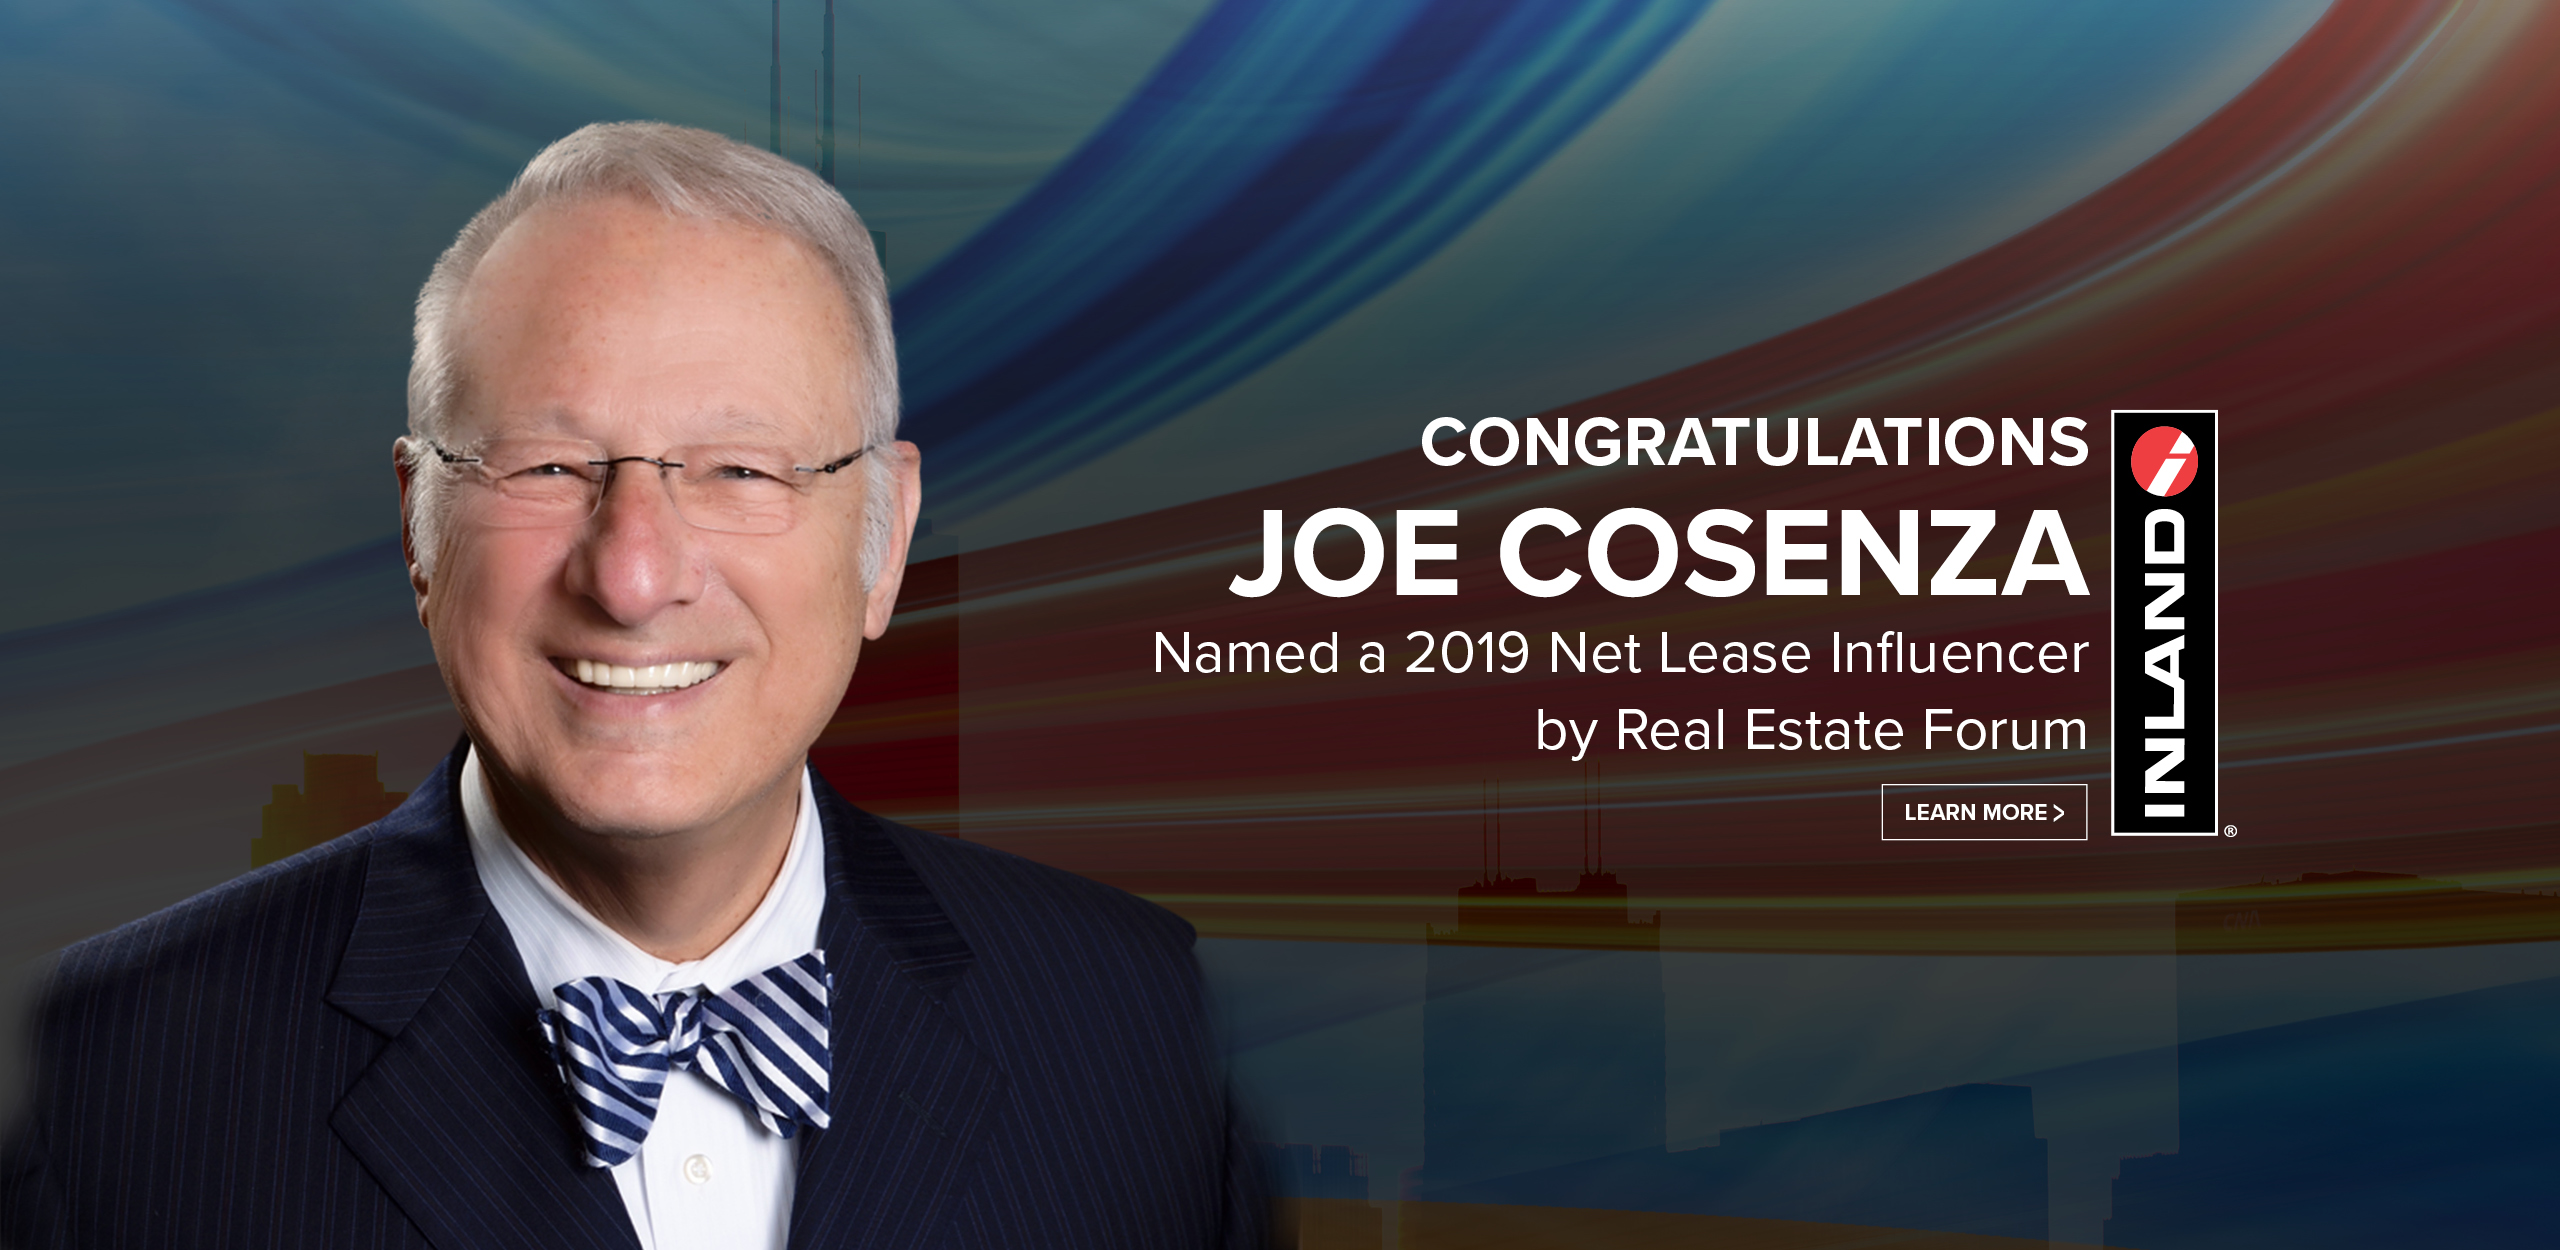 Joe Cosenza REForum Net Lease Influencer